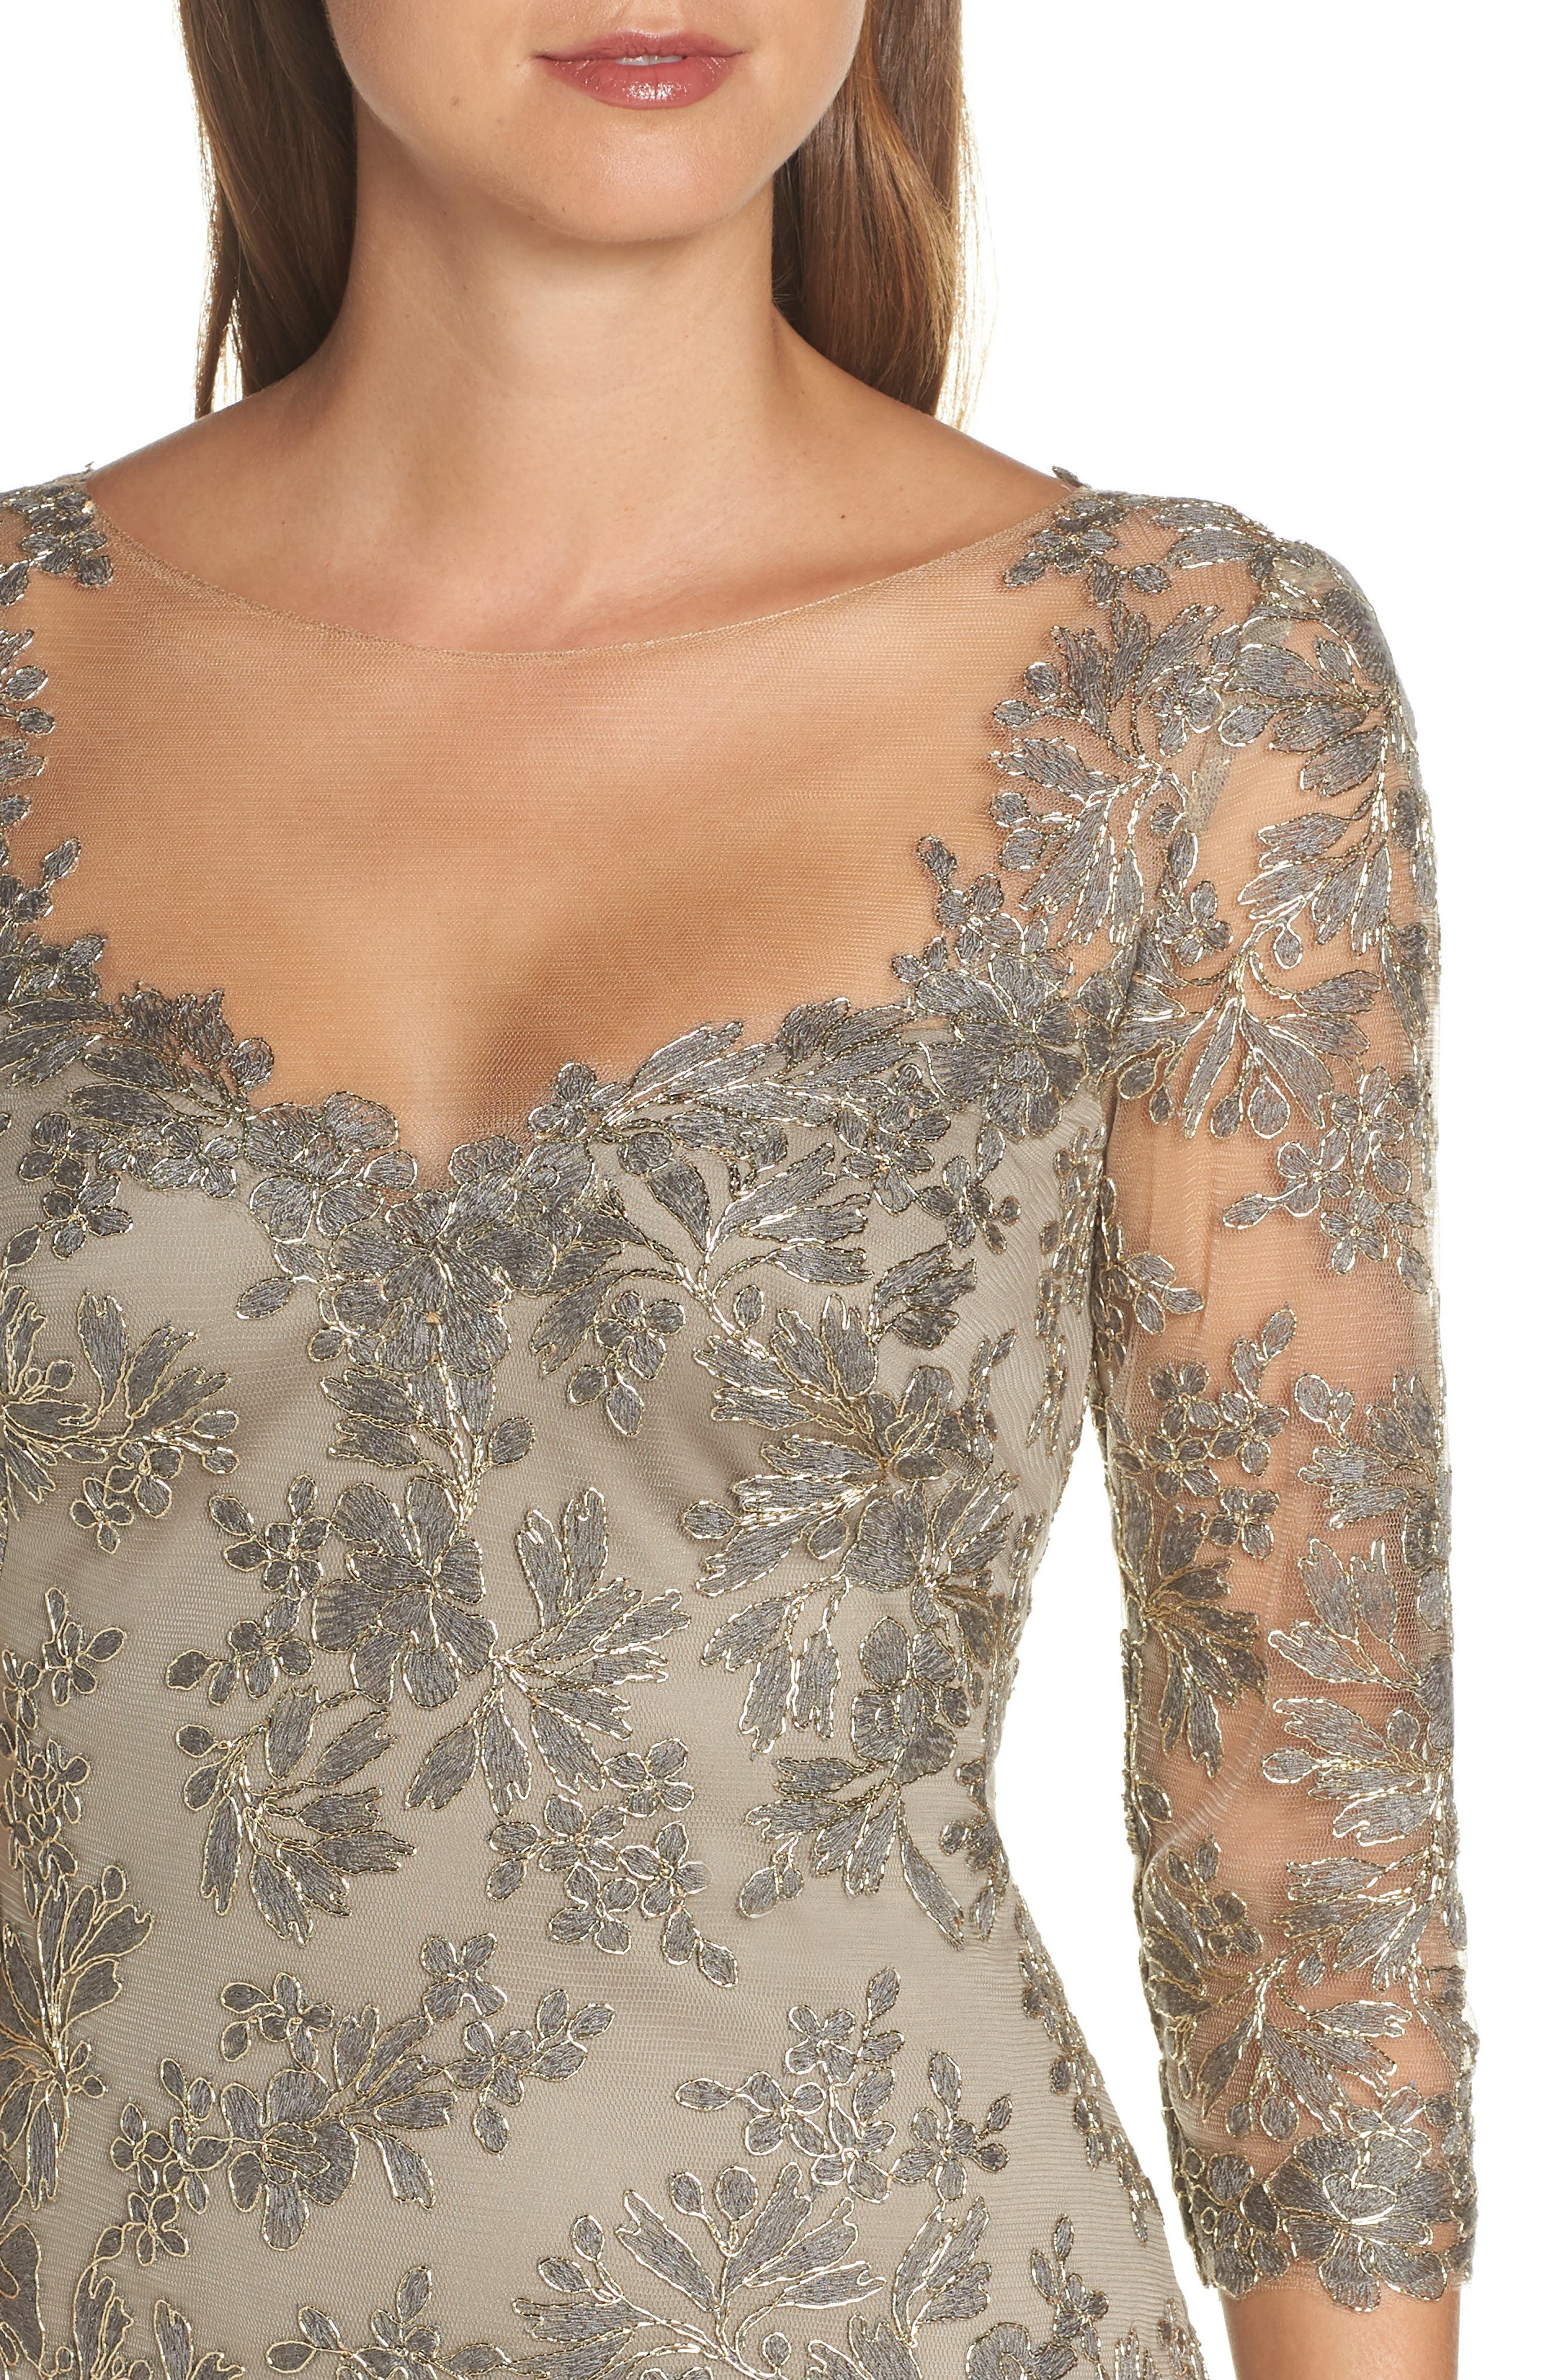 TADASHI SHOJI, Corded Embroidered Lace Gown, Alternate thumbnail 5, color, SMOKE PEARL